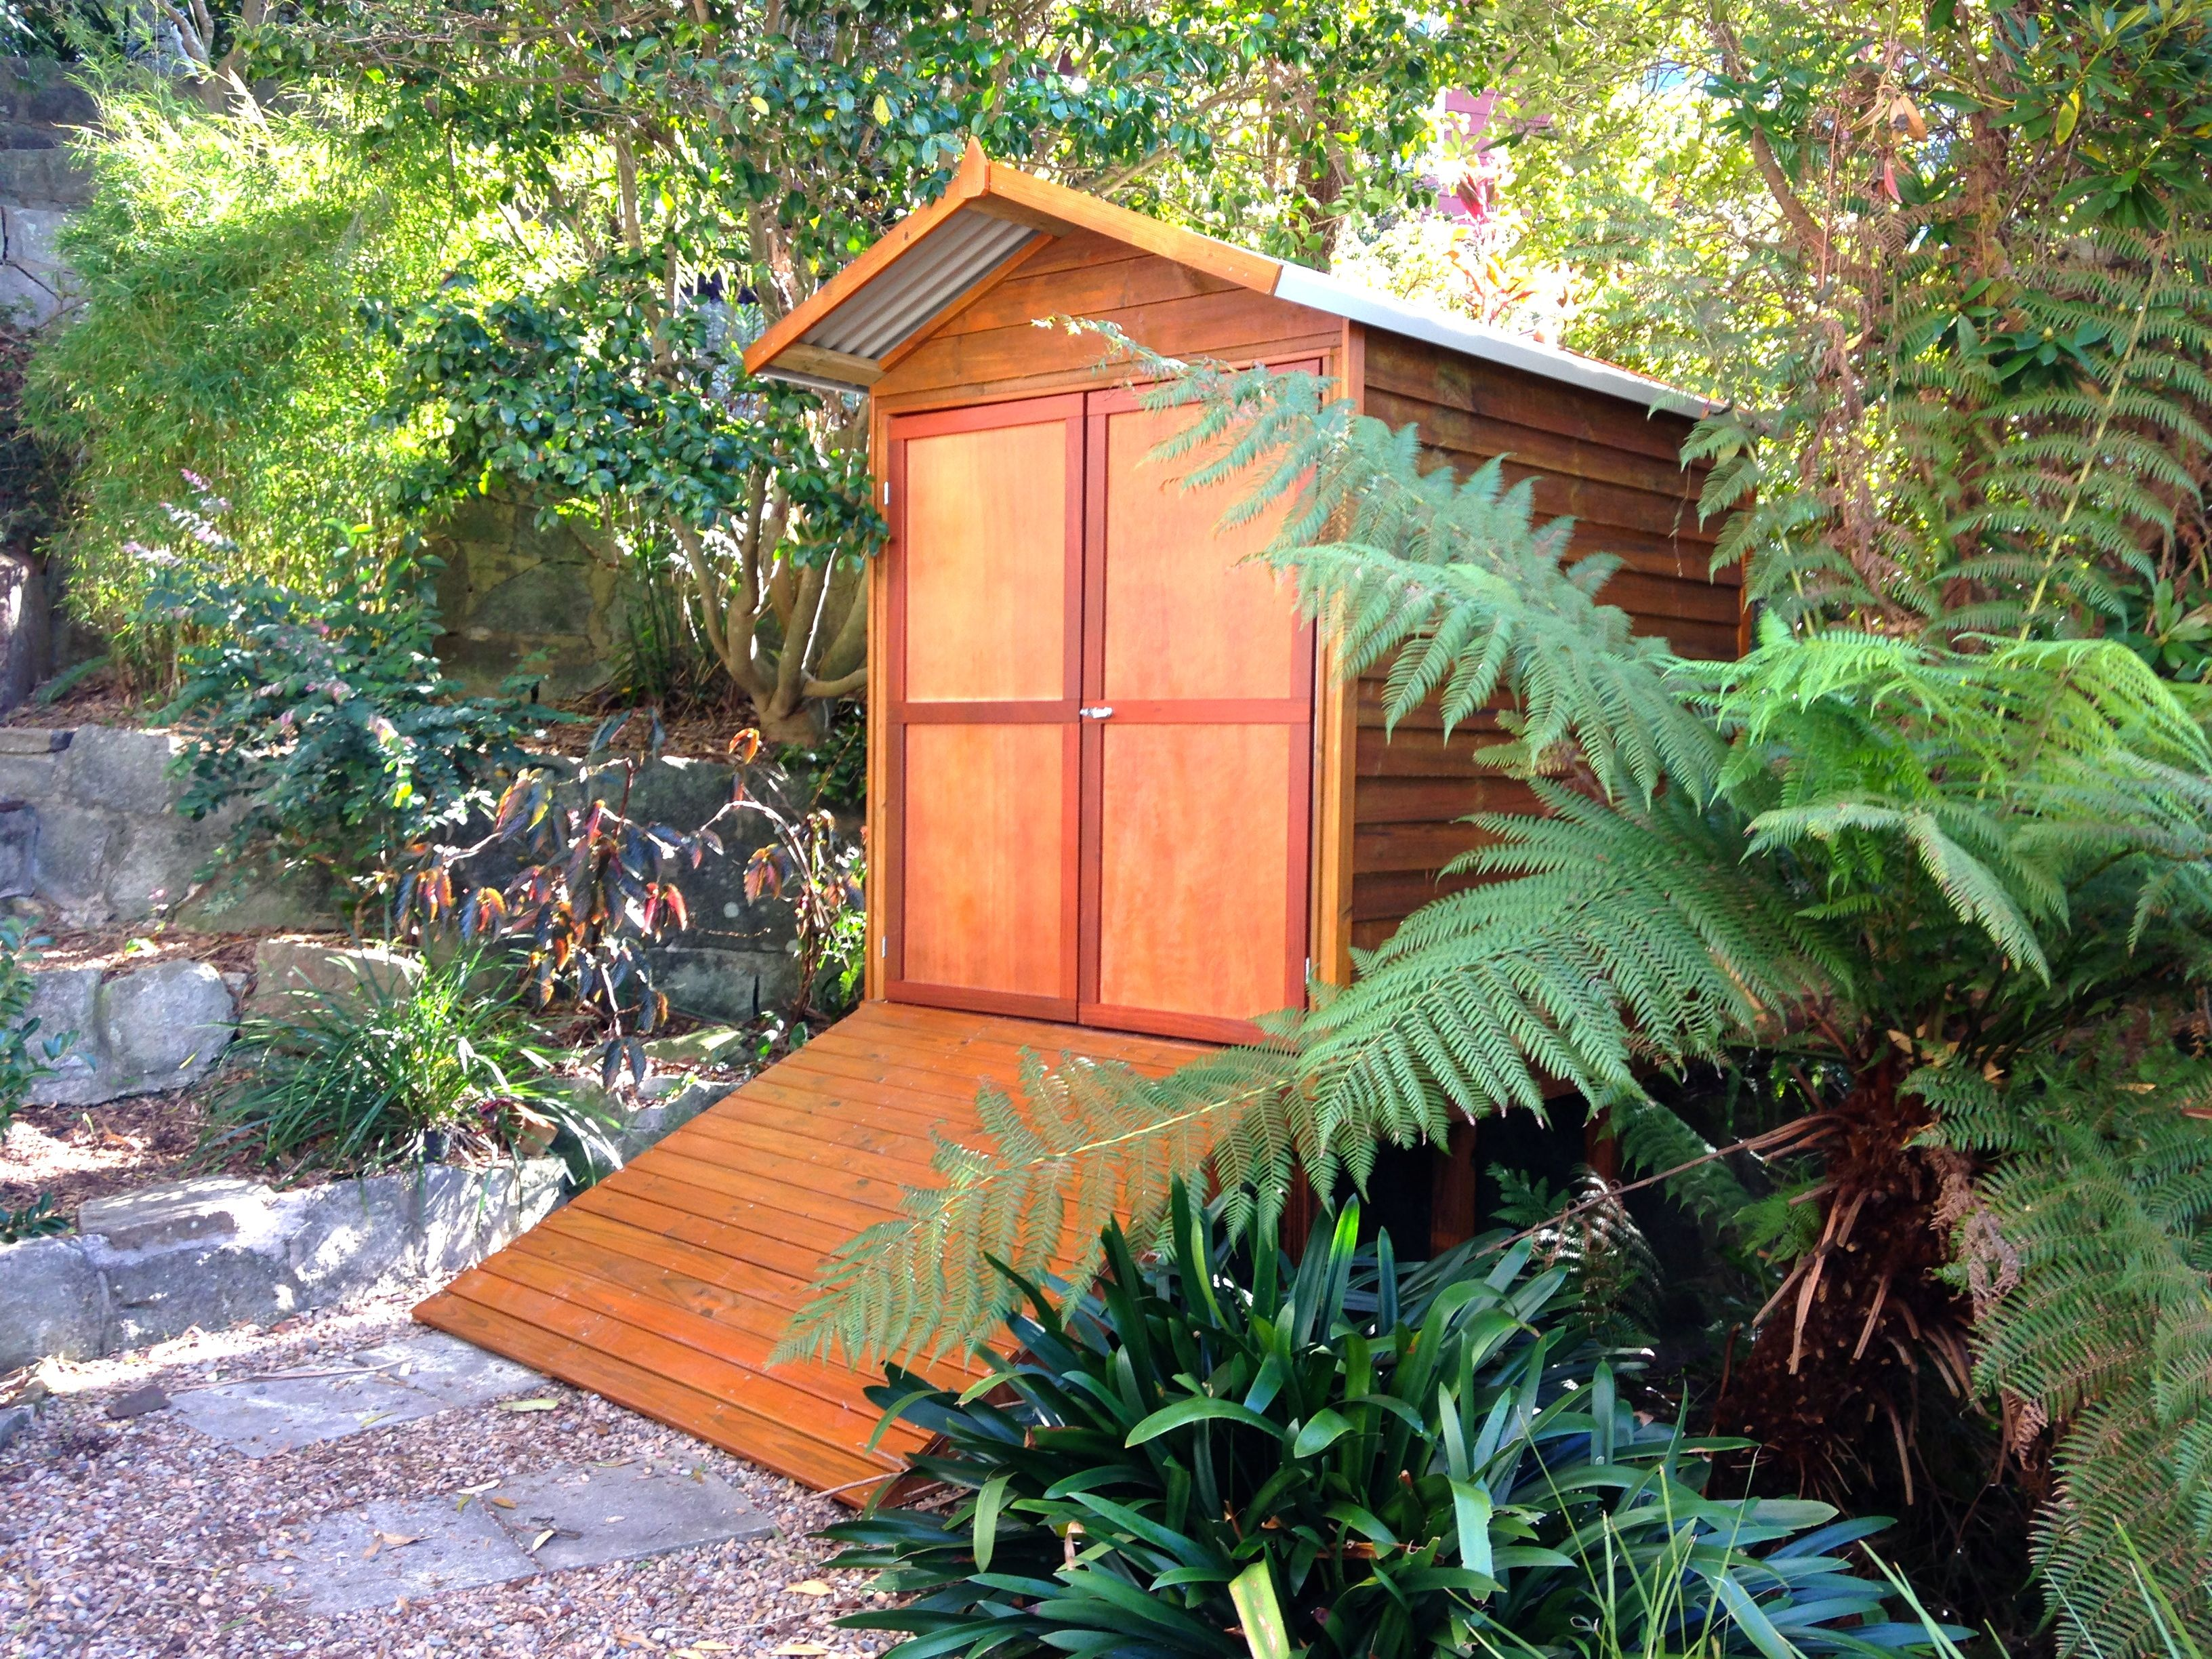 This little 1.7m wide shed is nicely tucked away in the big foliage ...